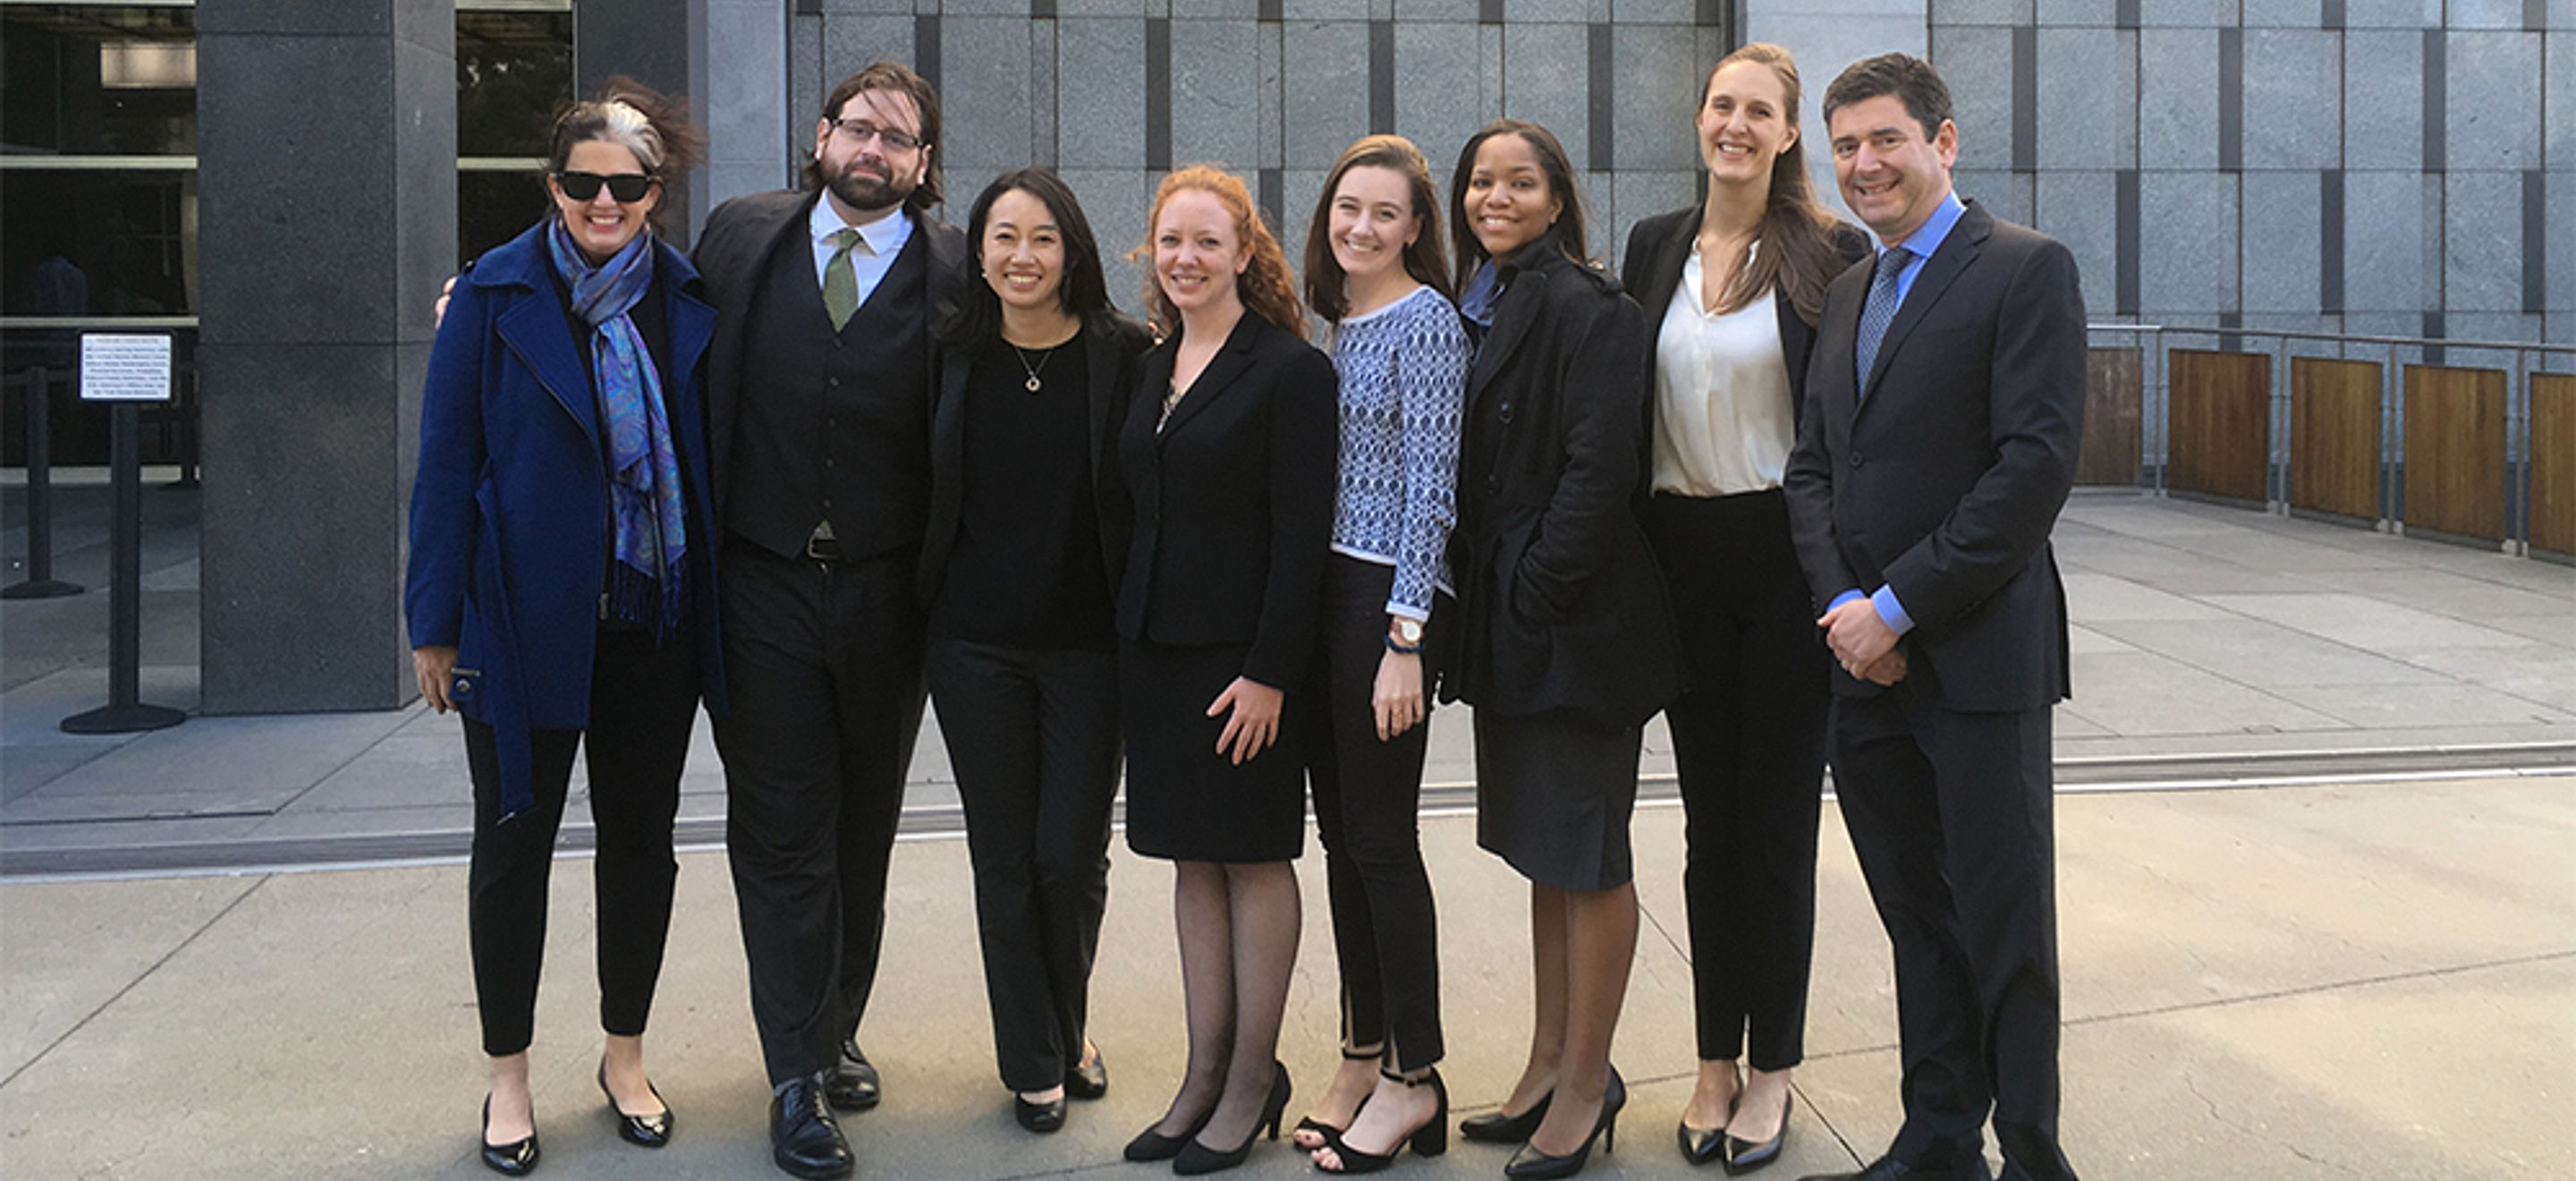 A group of eight people - some IRAP staff, some pro bono partners - dressed in professional attire outside a courtyard.